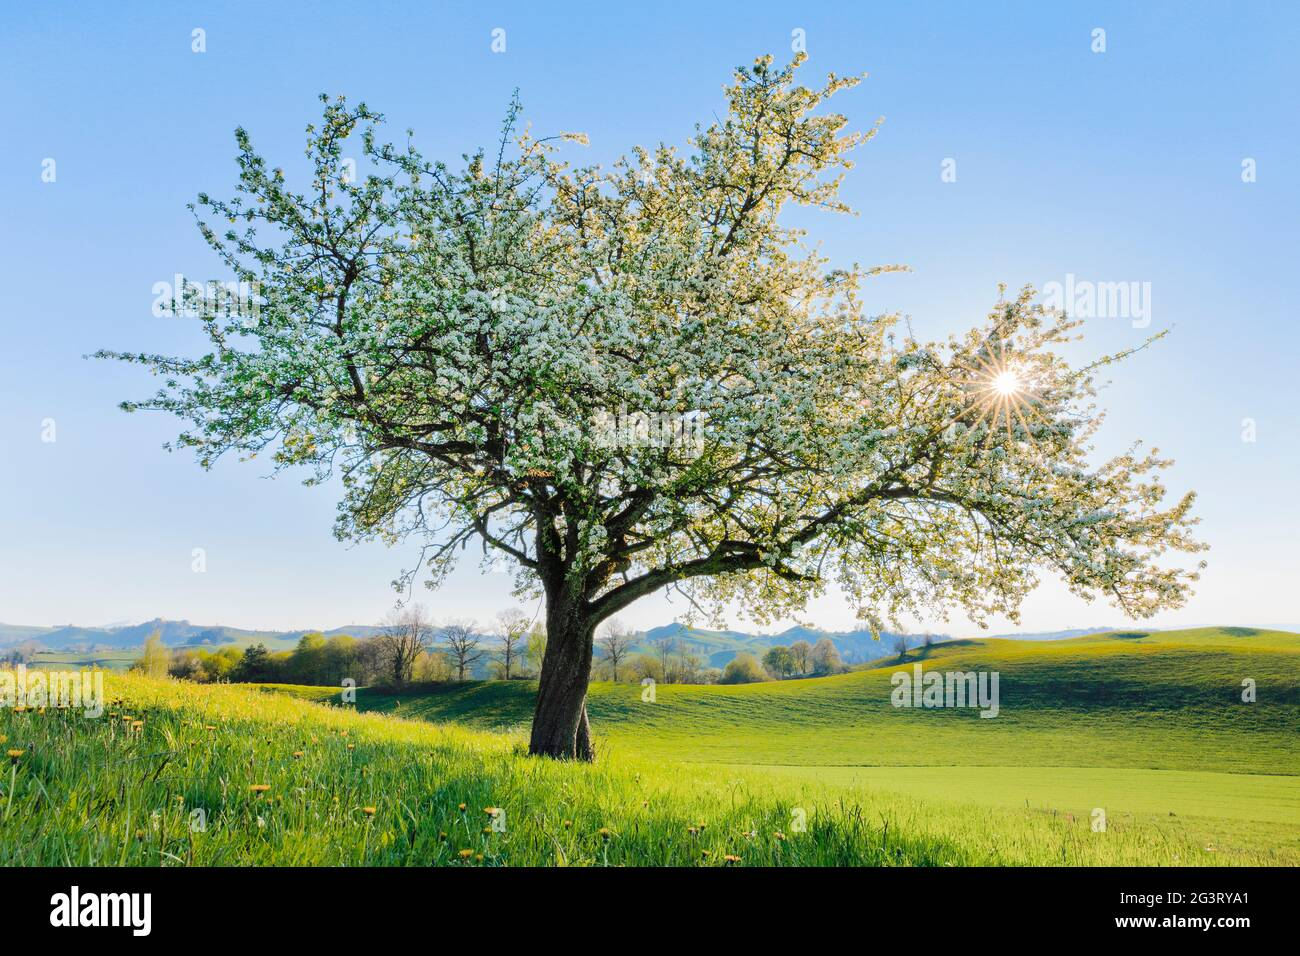 Common pear (Pyrus communis), blooming pear tree in flower meadow in spring in backlight, Switzerland, Zuercher Oberland Stock Photo